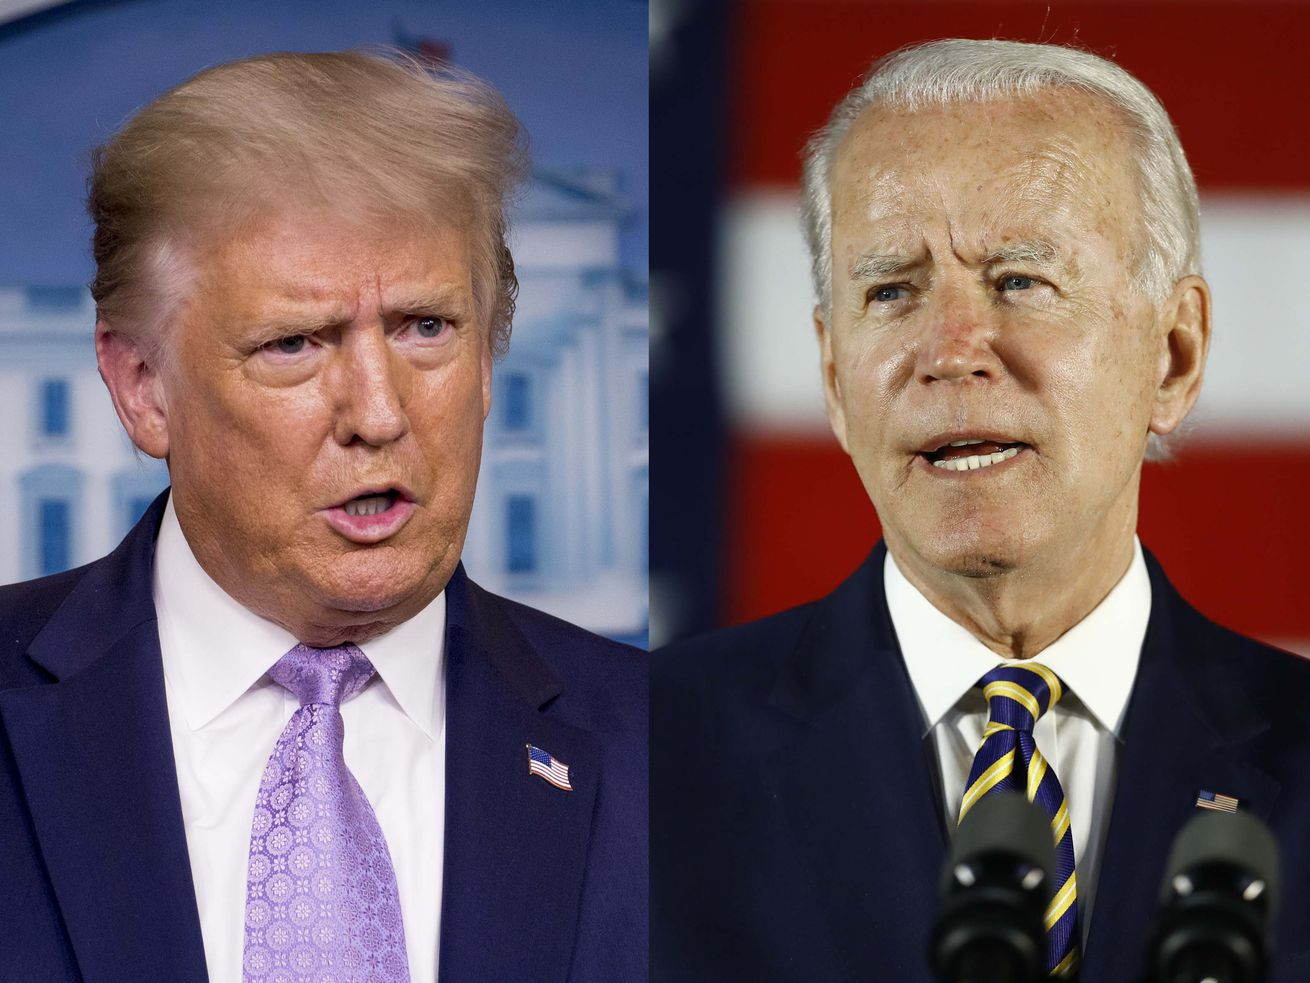 Poll: Voters concerned about election results being accepted by Trump, Biden